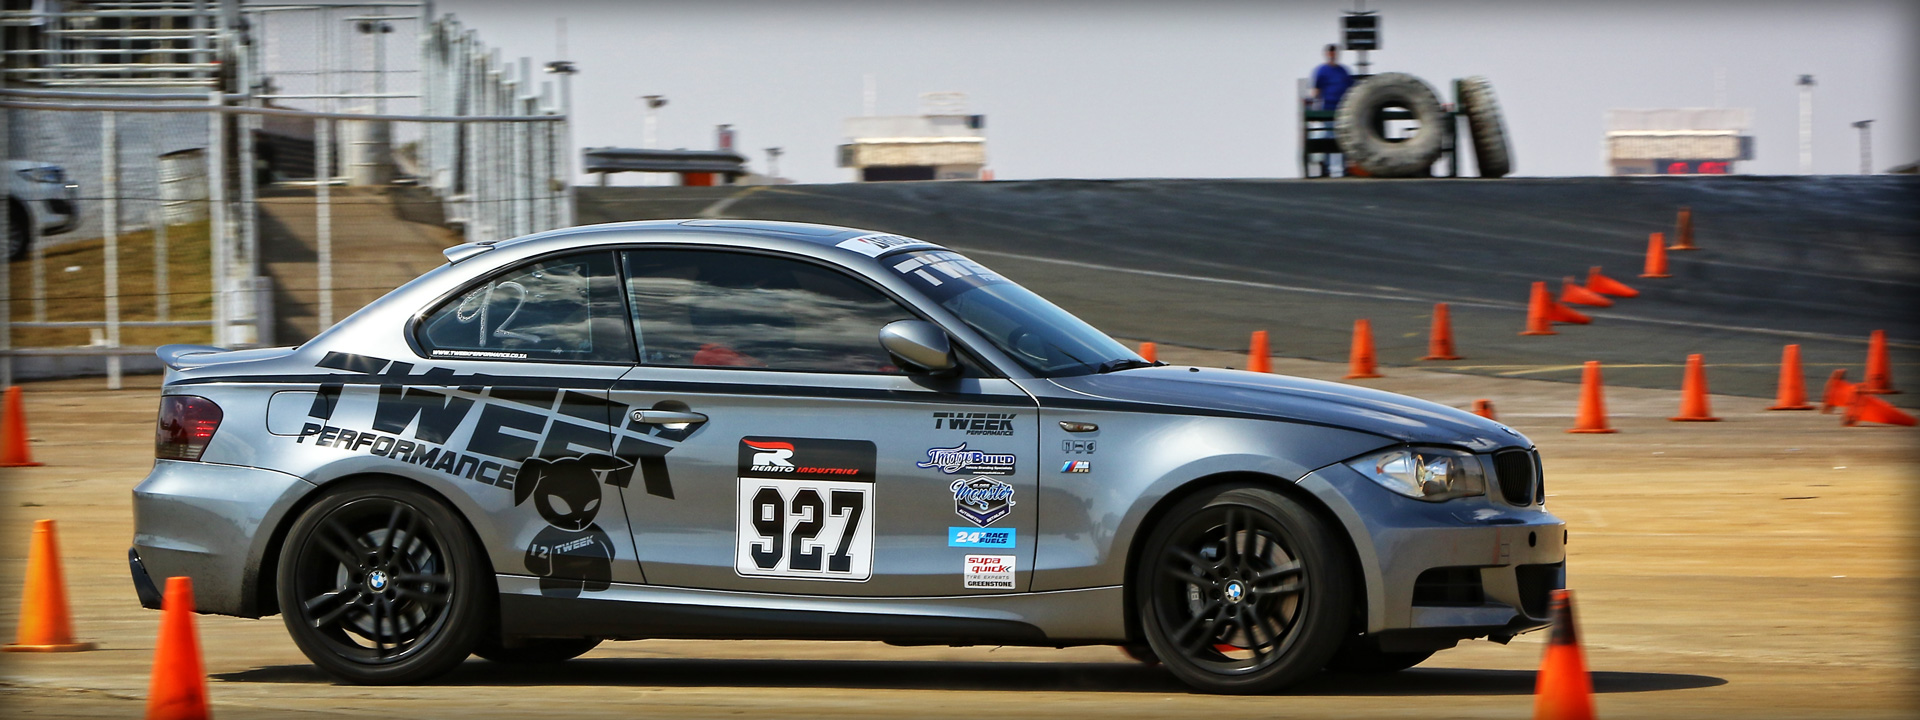 Bridgestone Tarlton Tar Autocross - 27 August 2017 - Tarlton International Raceway - Photographs